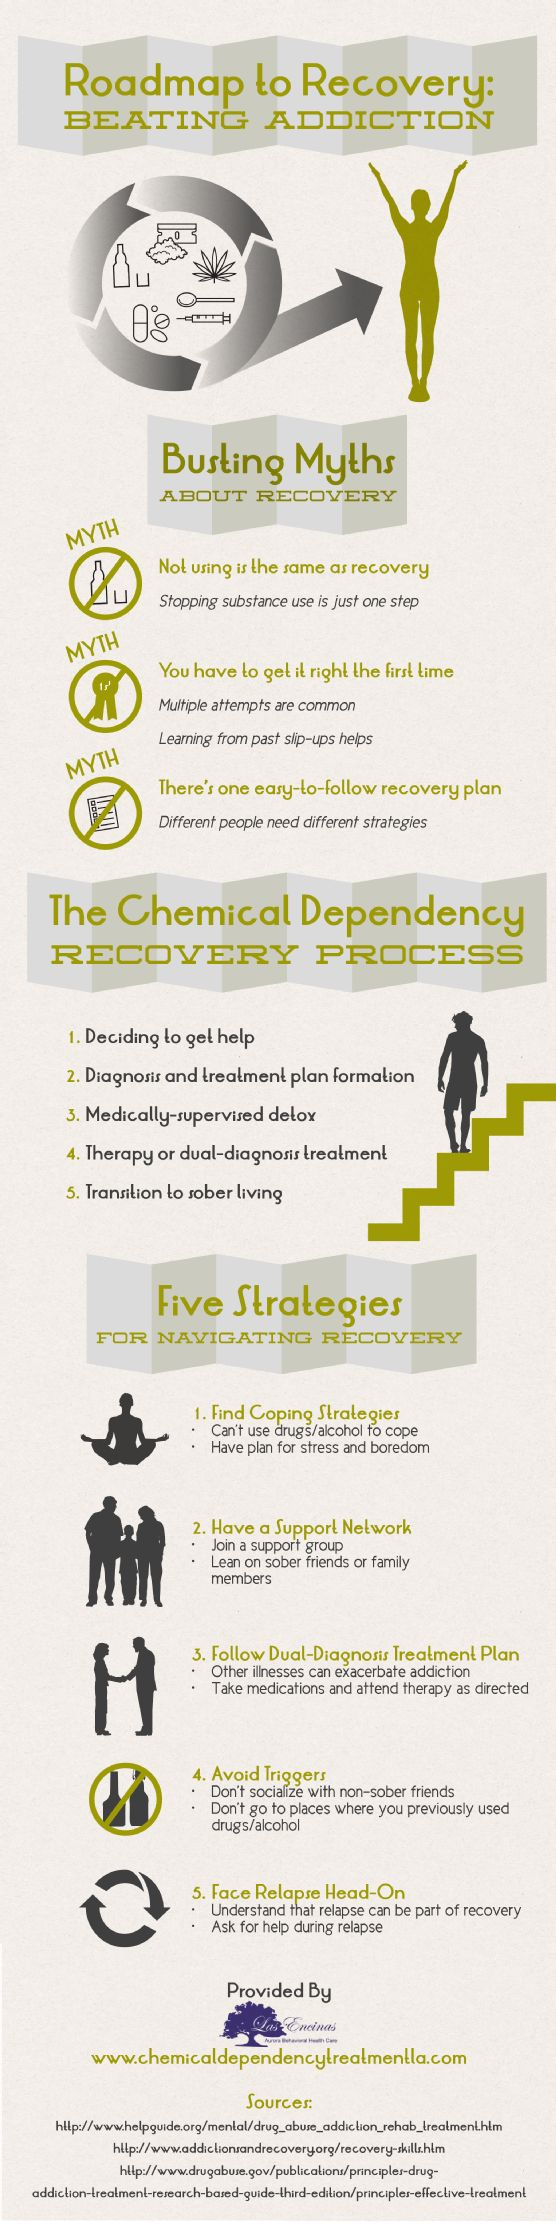 Many people think they have to get the recovery process right the first time, but multiple attempts are actually common. Learn more by taking a look at this infographic from an addiction treatment center in Pasadena.